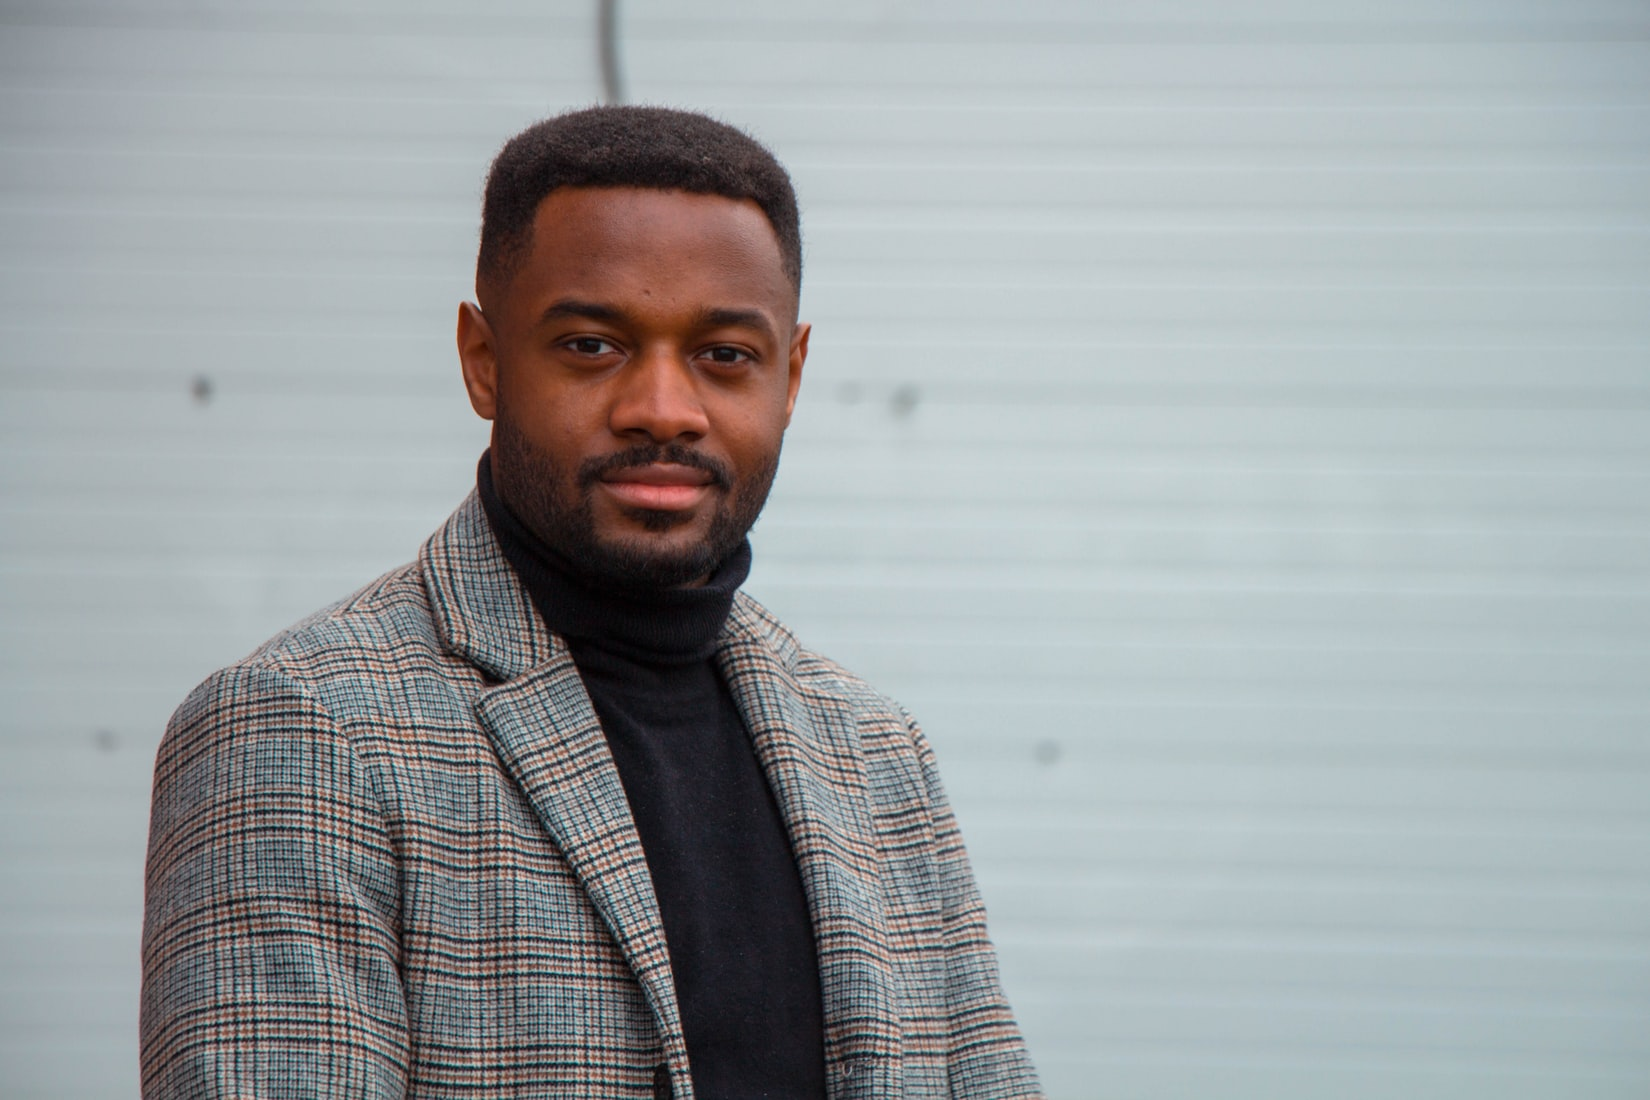 Close-up photography of black man wearing a black turtle neck shirt and gray blazer